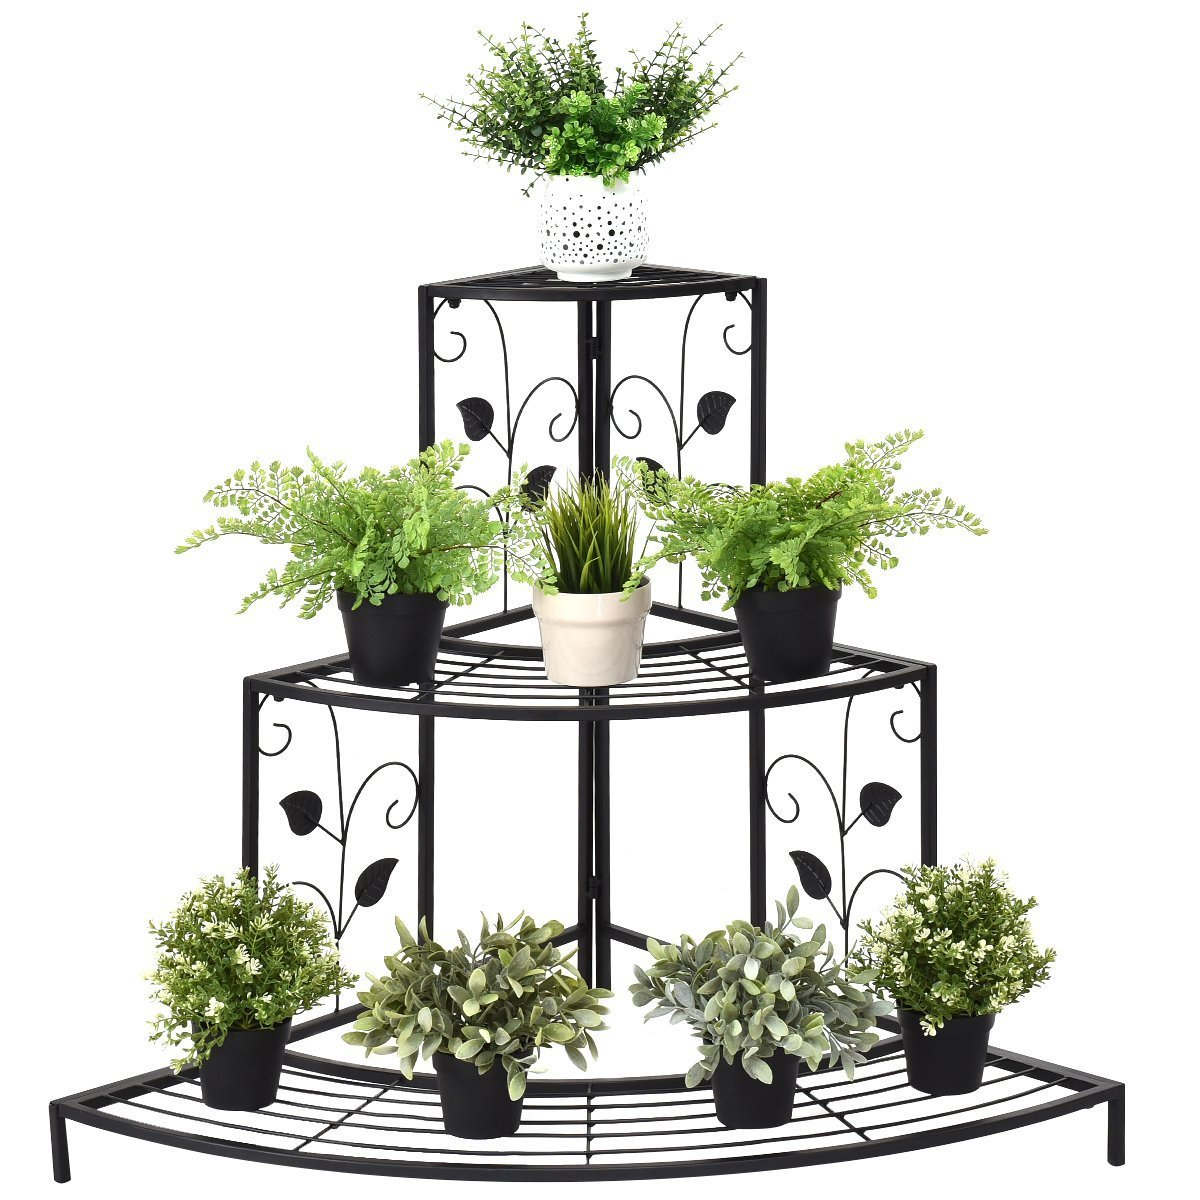 Giantex 3 Tier Plant Stand Floral Corner Metal Flower Pot Rack Stair-Step Style Display Ladder by Giantex